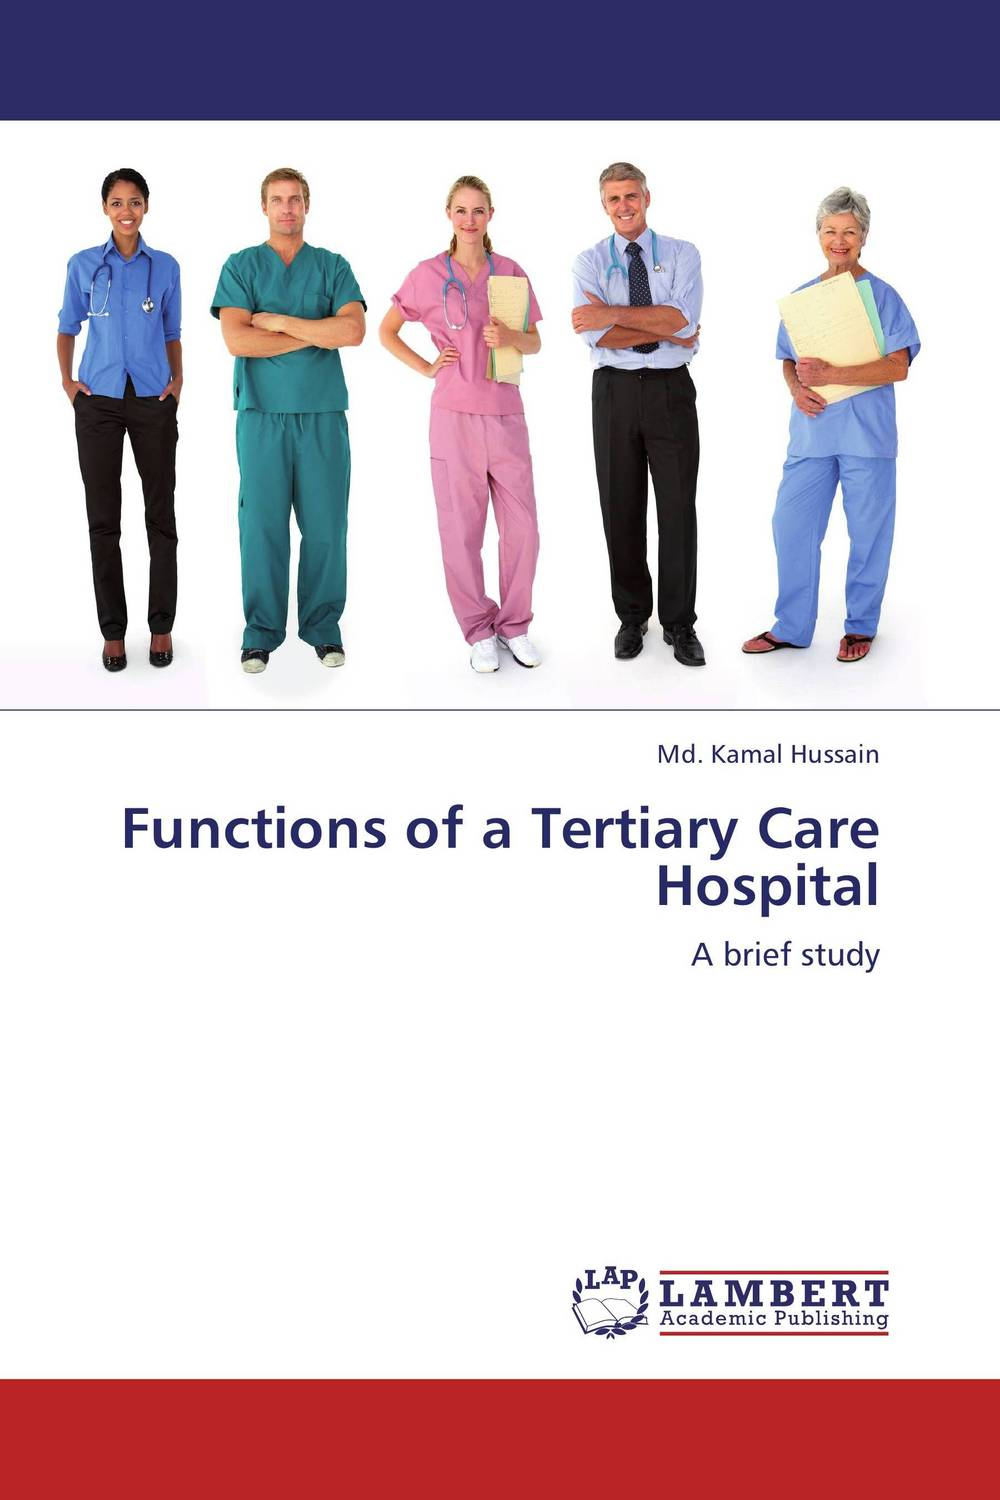 Functions of a Tertiary Care Hospital surveillance of surgical site infection in tertiary hospital